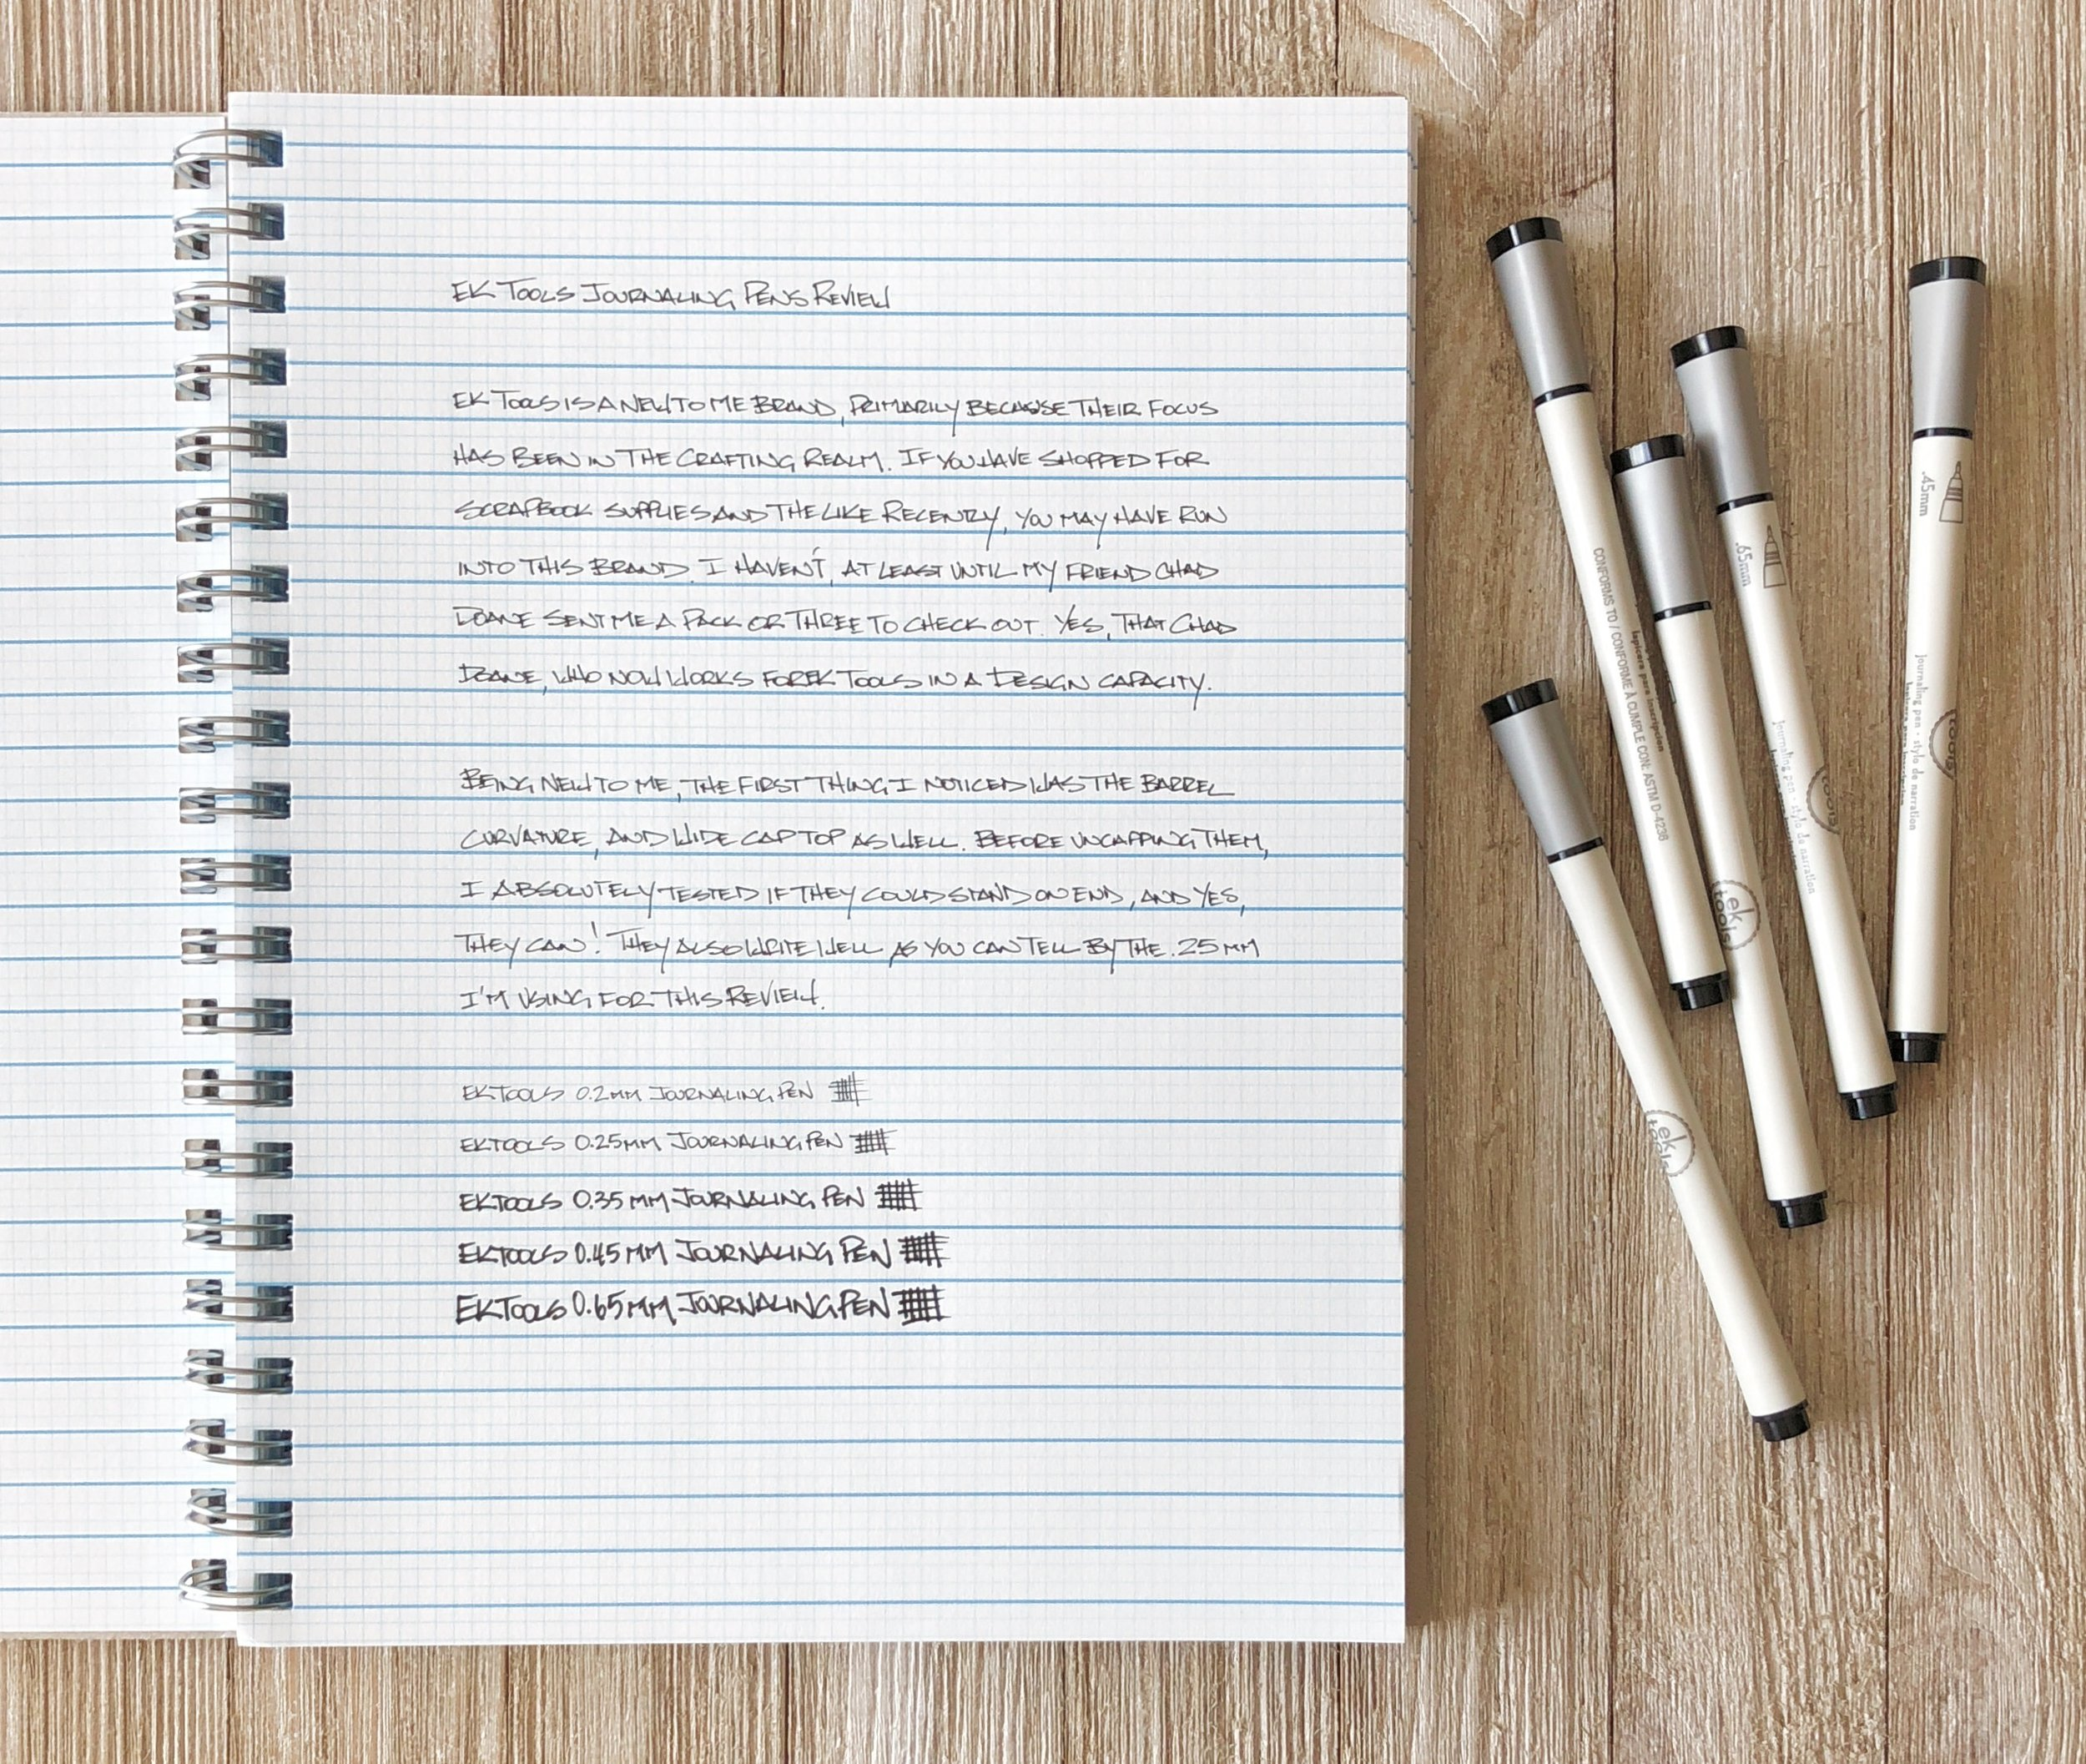 EK Tools Journaling Pen Writing